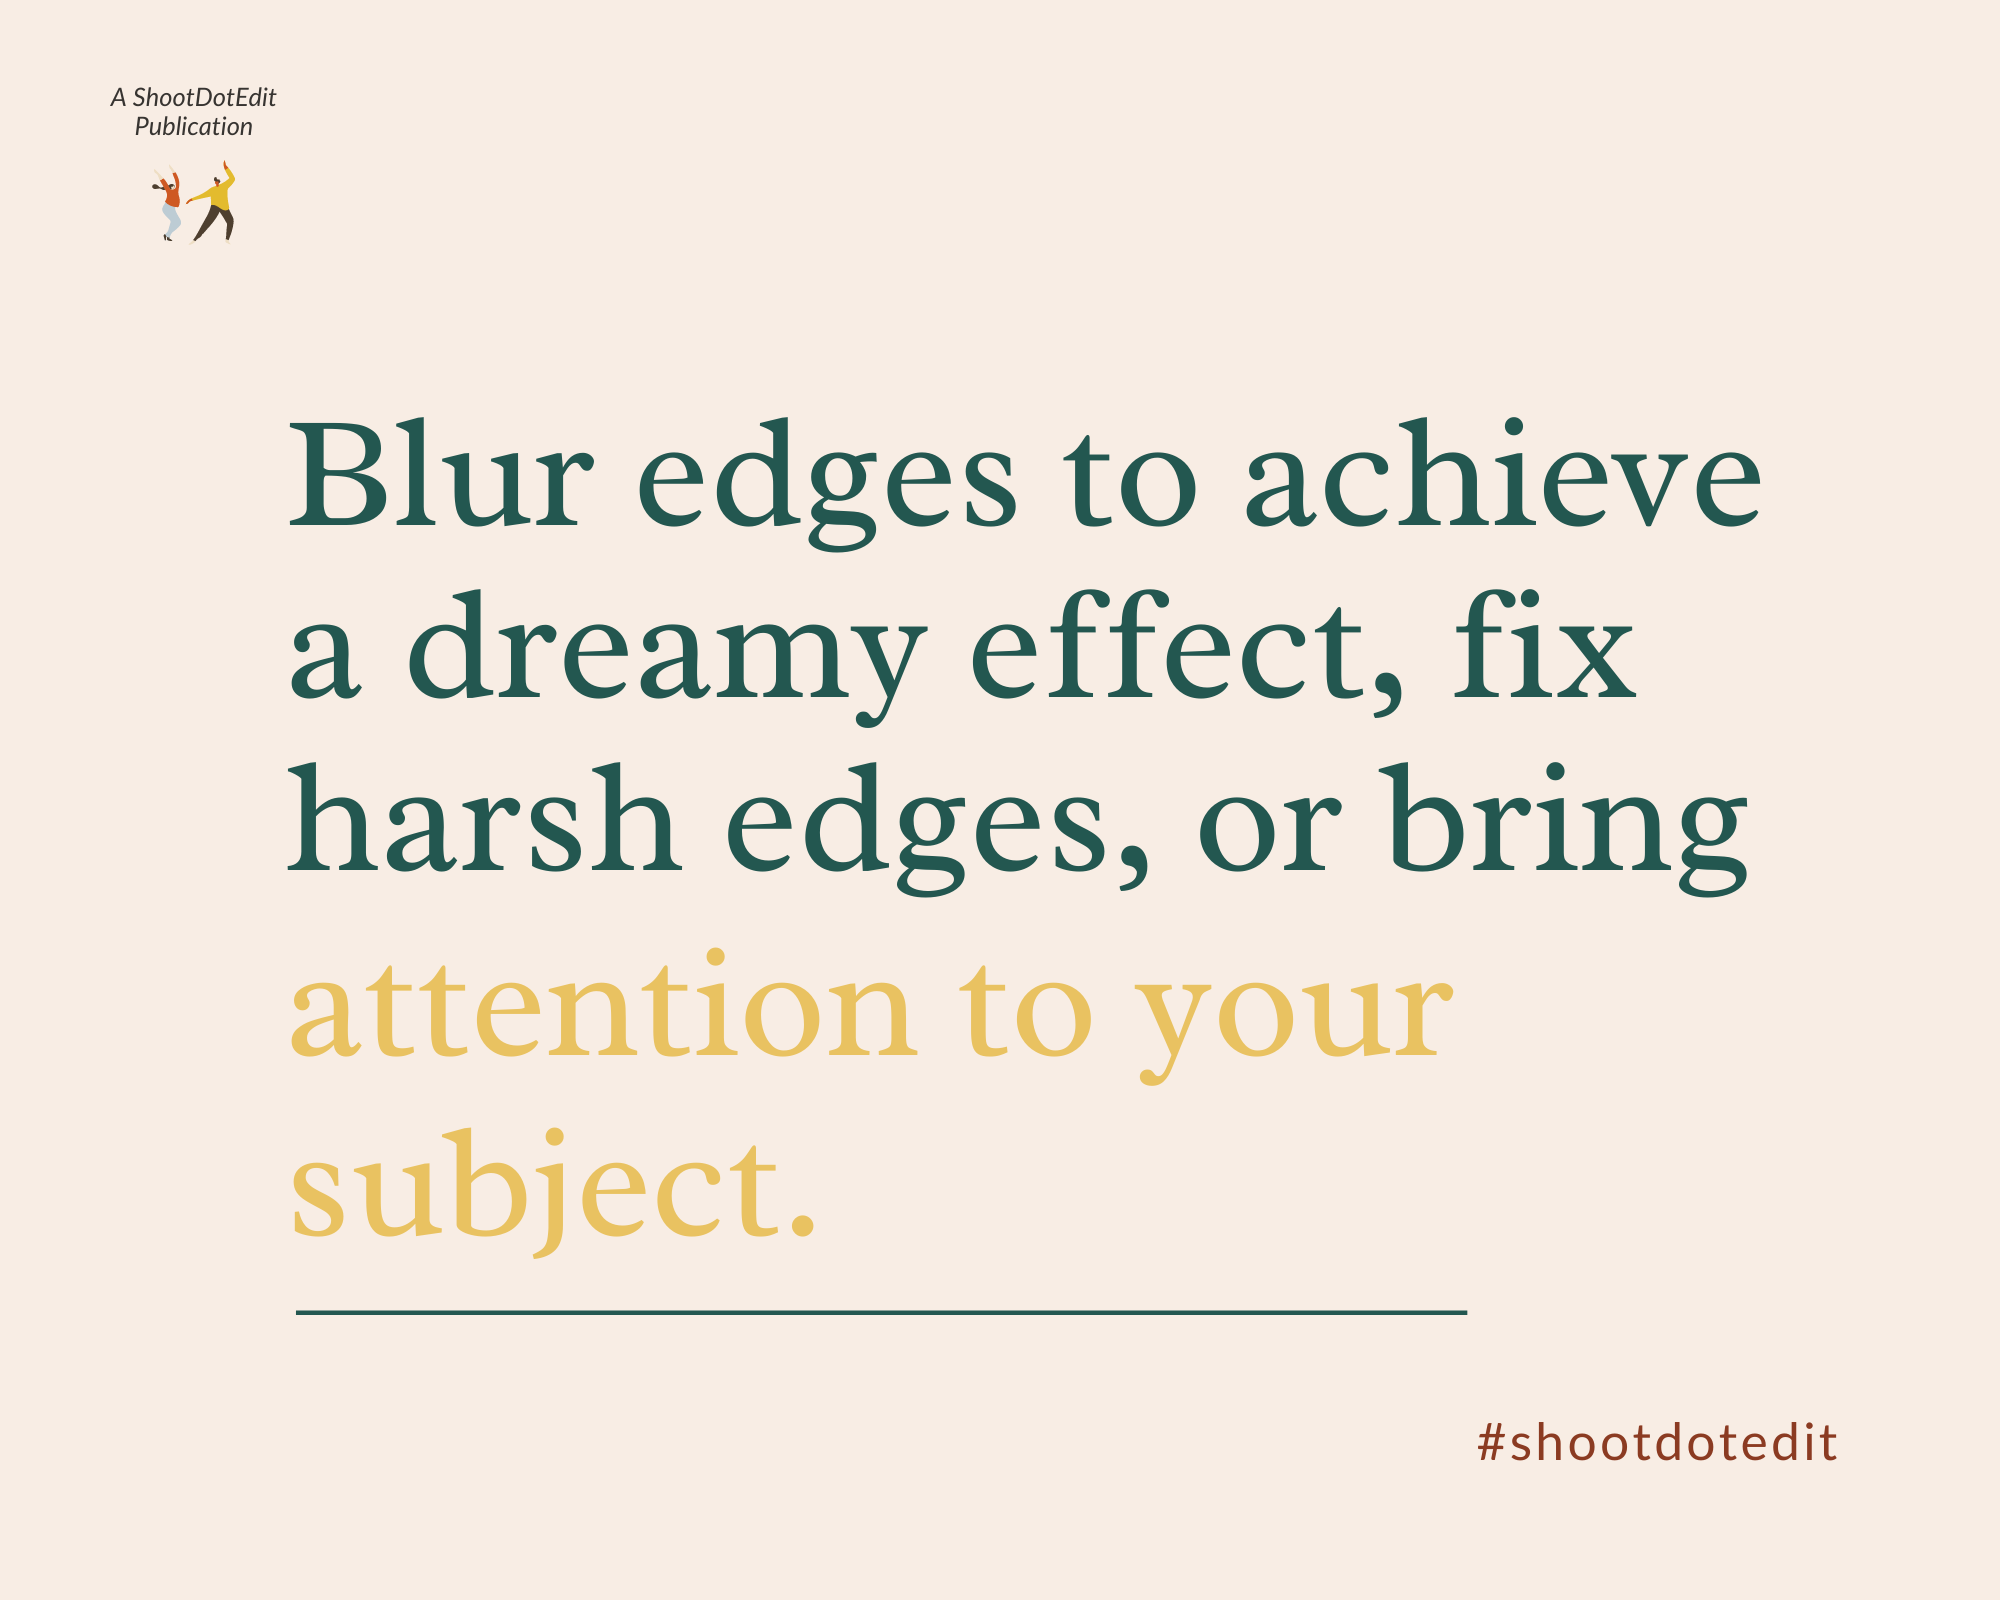 Infographic stating blur edges to achieve a dreamy effect, fix harsh edges, or bring attention to your subject